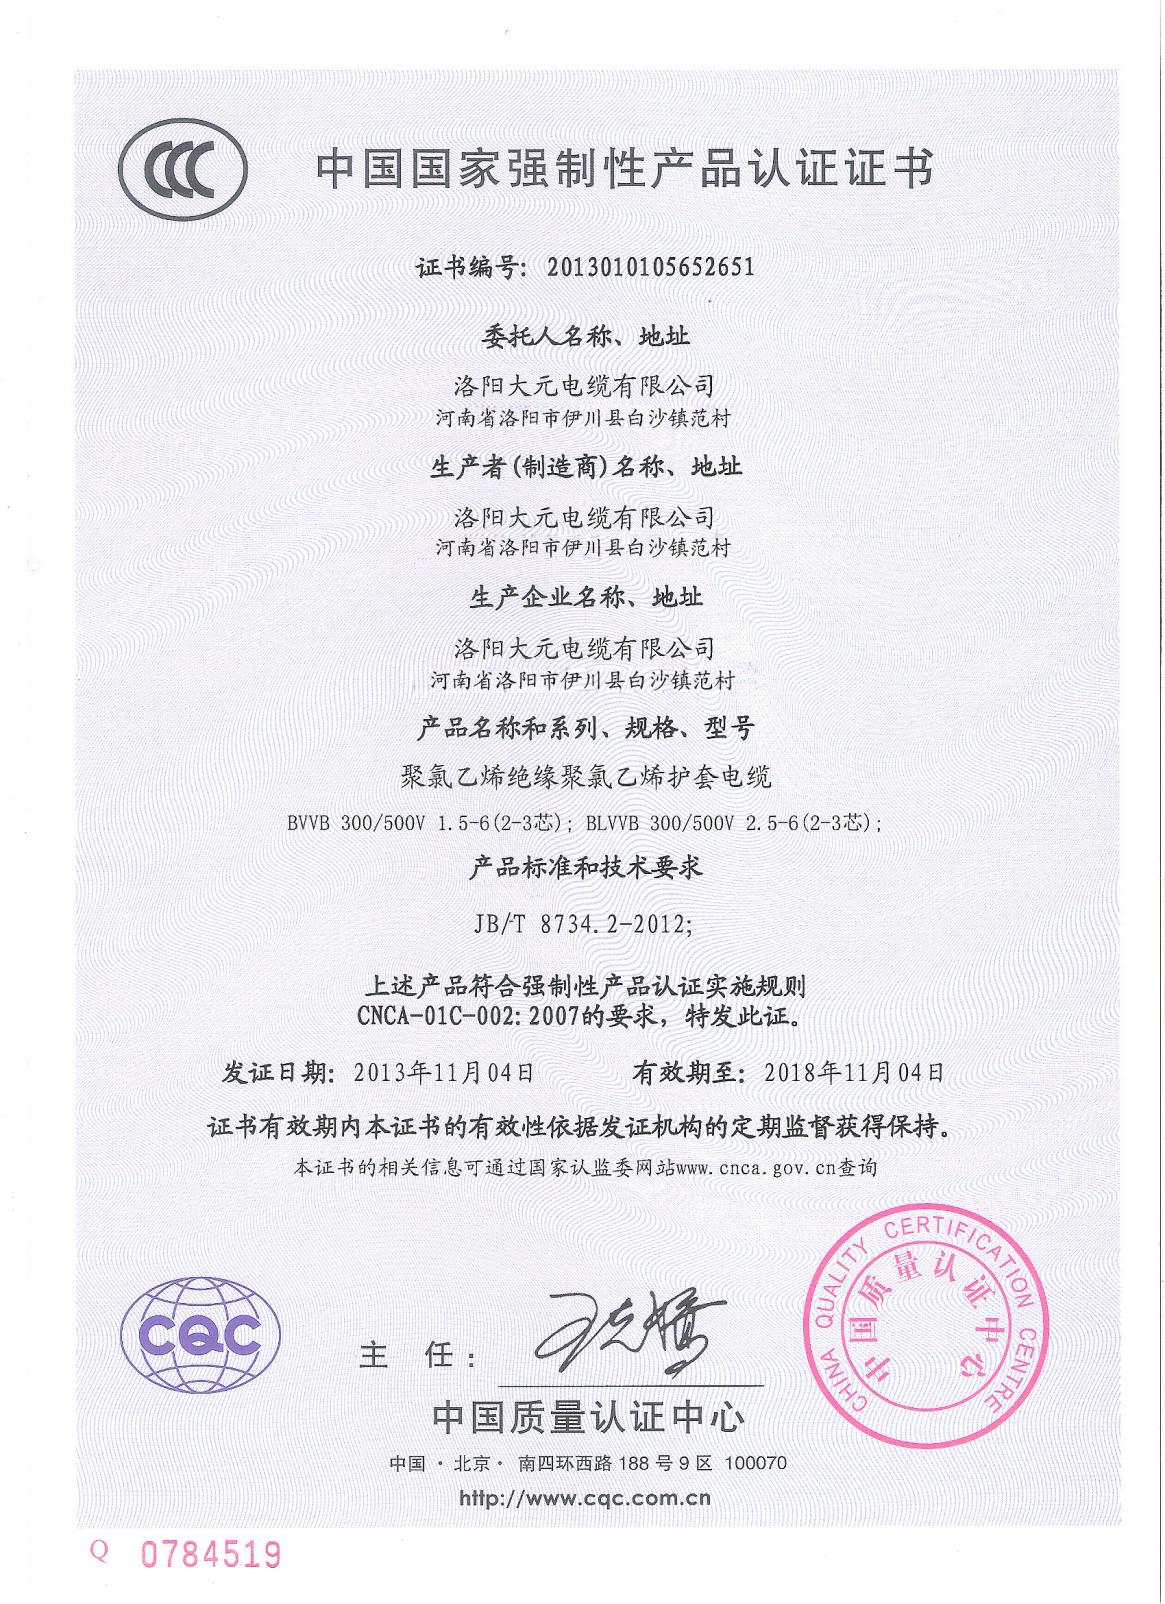 PVC Insulation and Jacket cable 3C Certificate